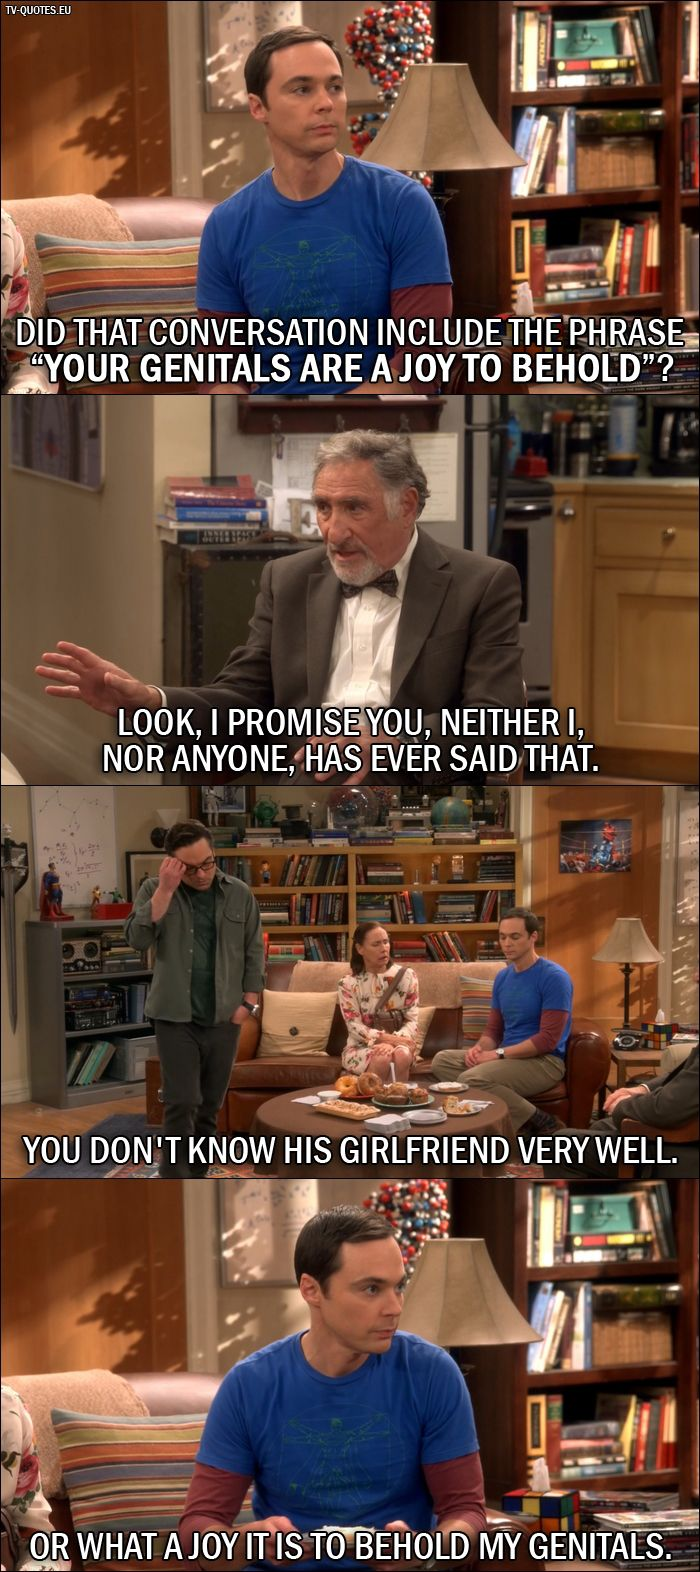 """Quote from The Big Bang Theory 10x01: Sheldon Cooper: Did that conversation include the phrase """"your genitals are a joy to behold""""? Alfred Hofstadter: Look, I promise you, neither I, nor anyone, has ever said that. Leonard Hofstadter: You don't know his girlfriend very well. Sheldon Cooper: Or what a joy it is to behold my genitals."""